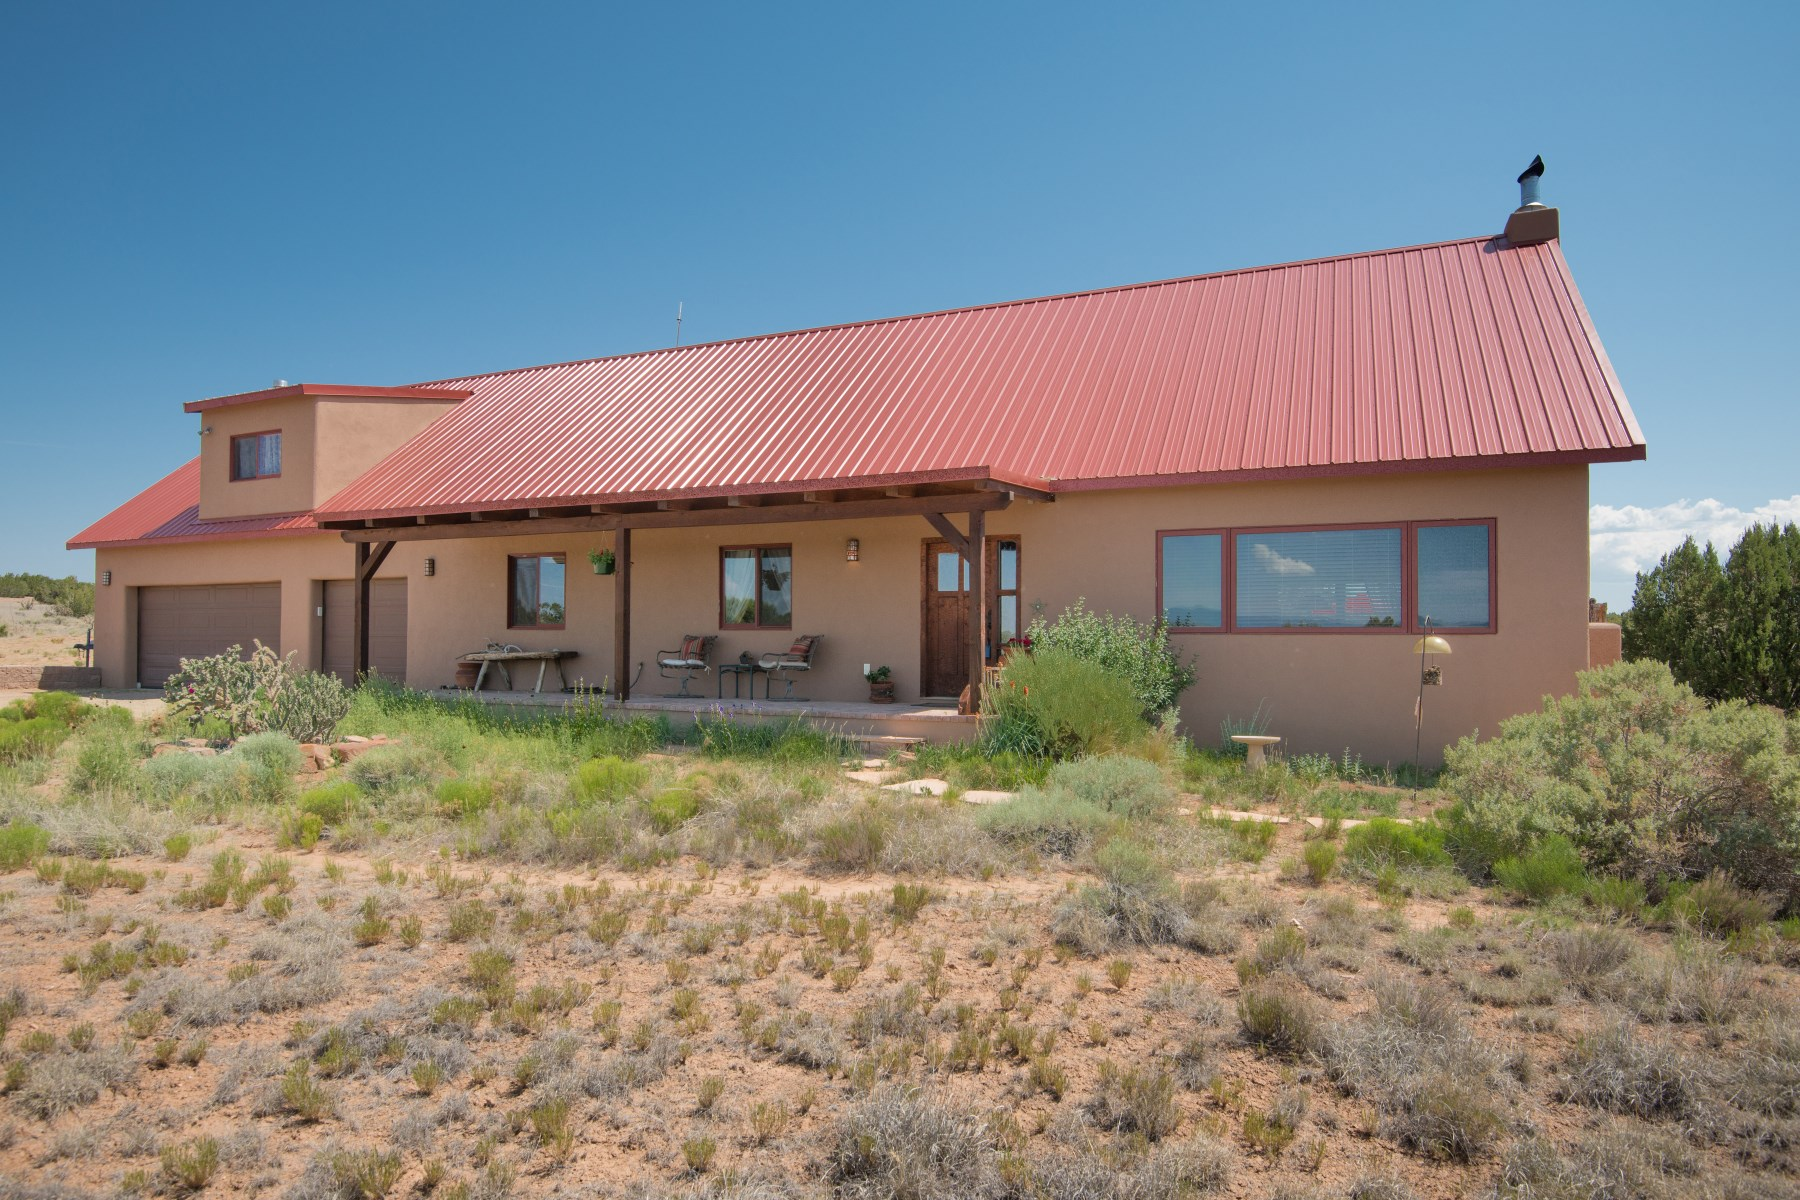 Single Family Home for Sale at 3650 Highway 14 3650 State Highway 14, Santa Fe, New Mexico, 87508 United States